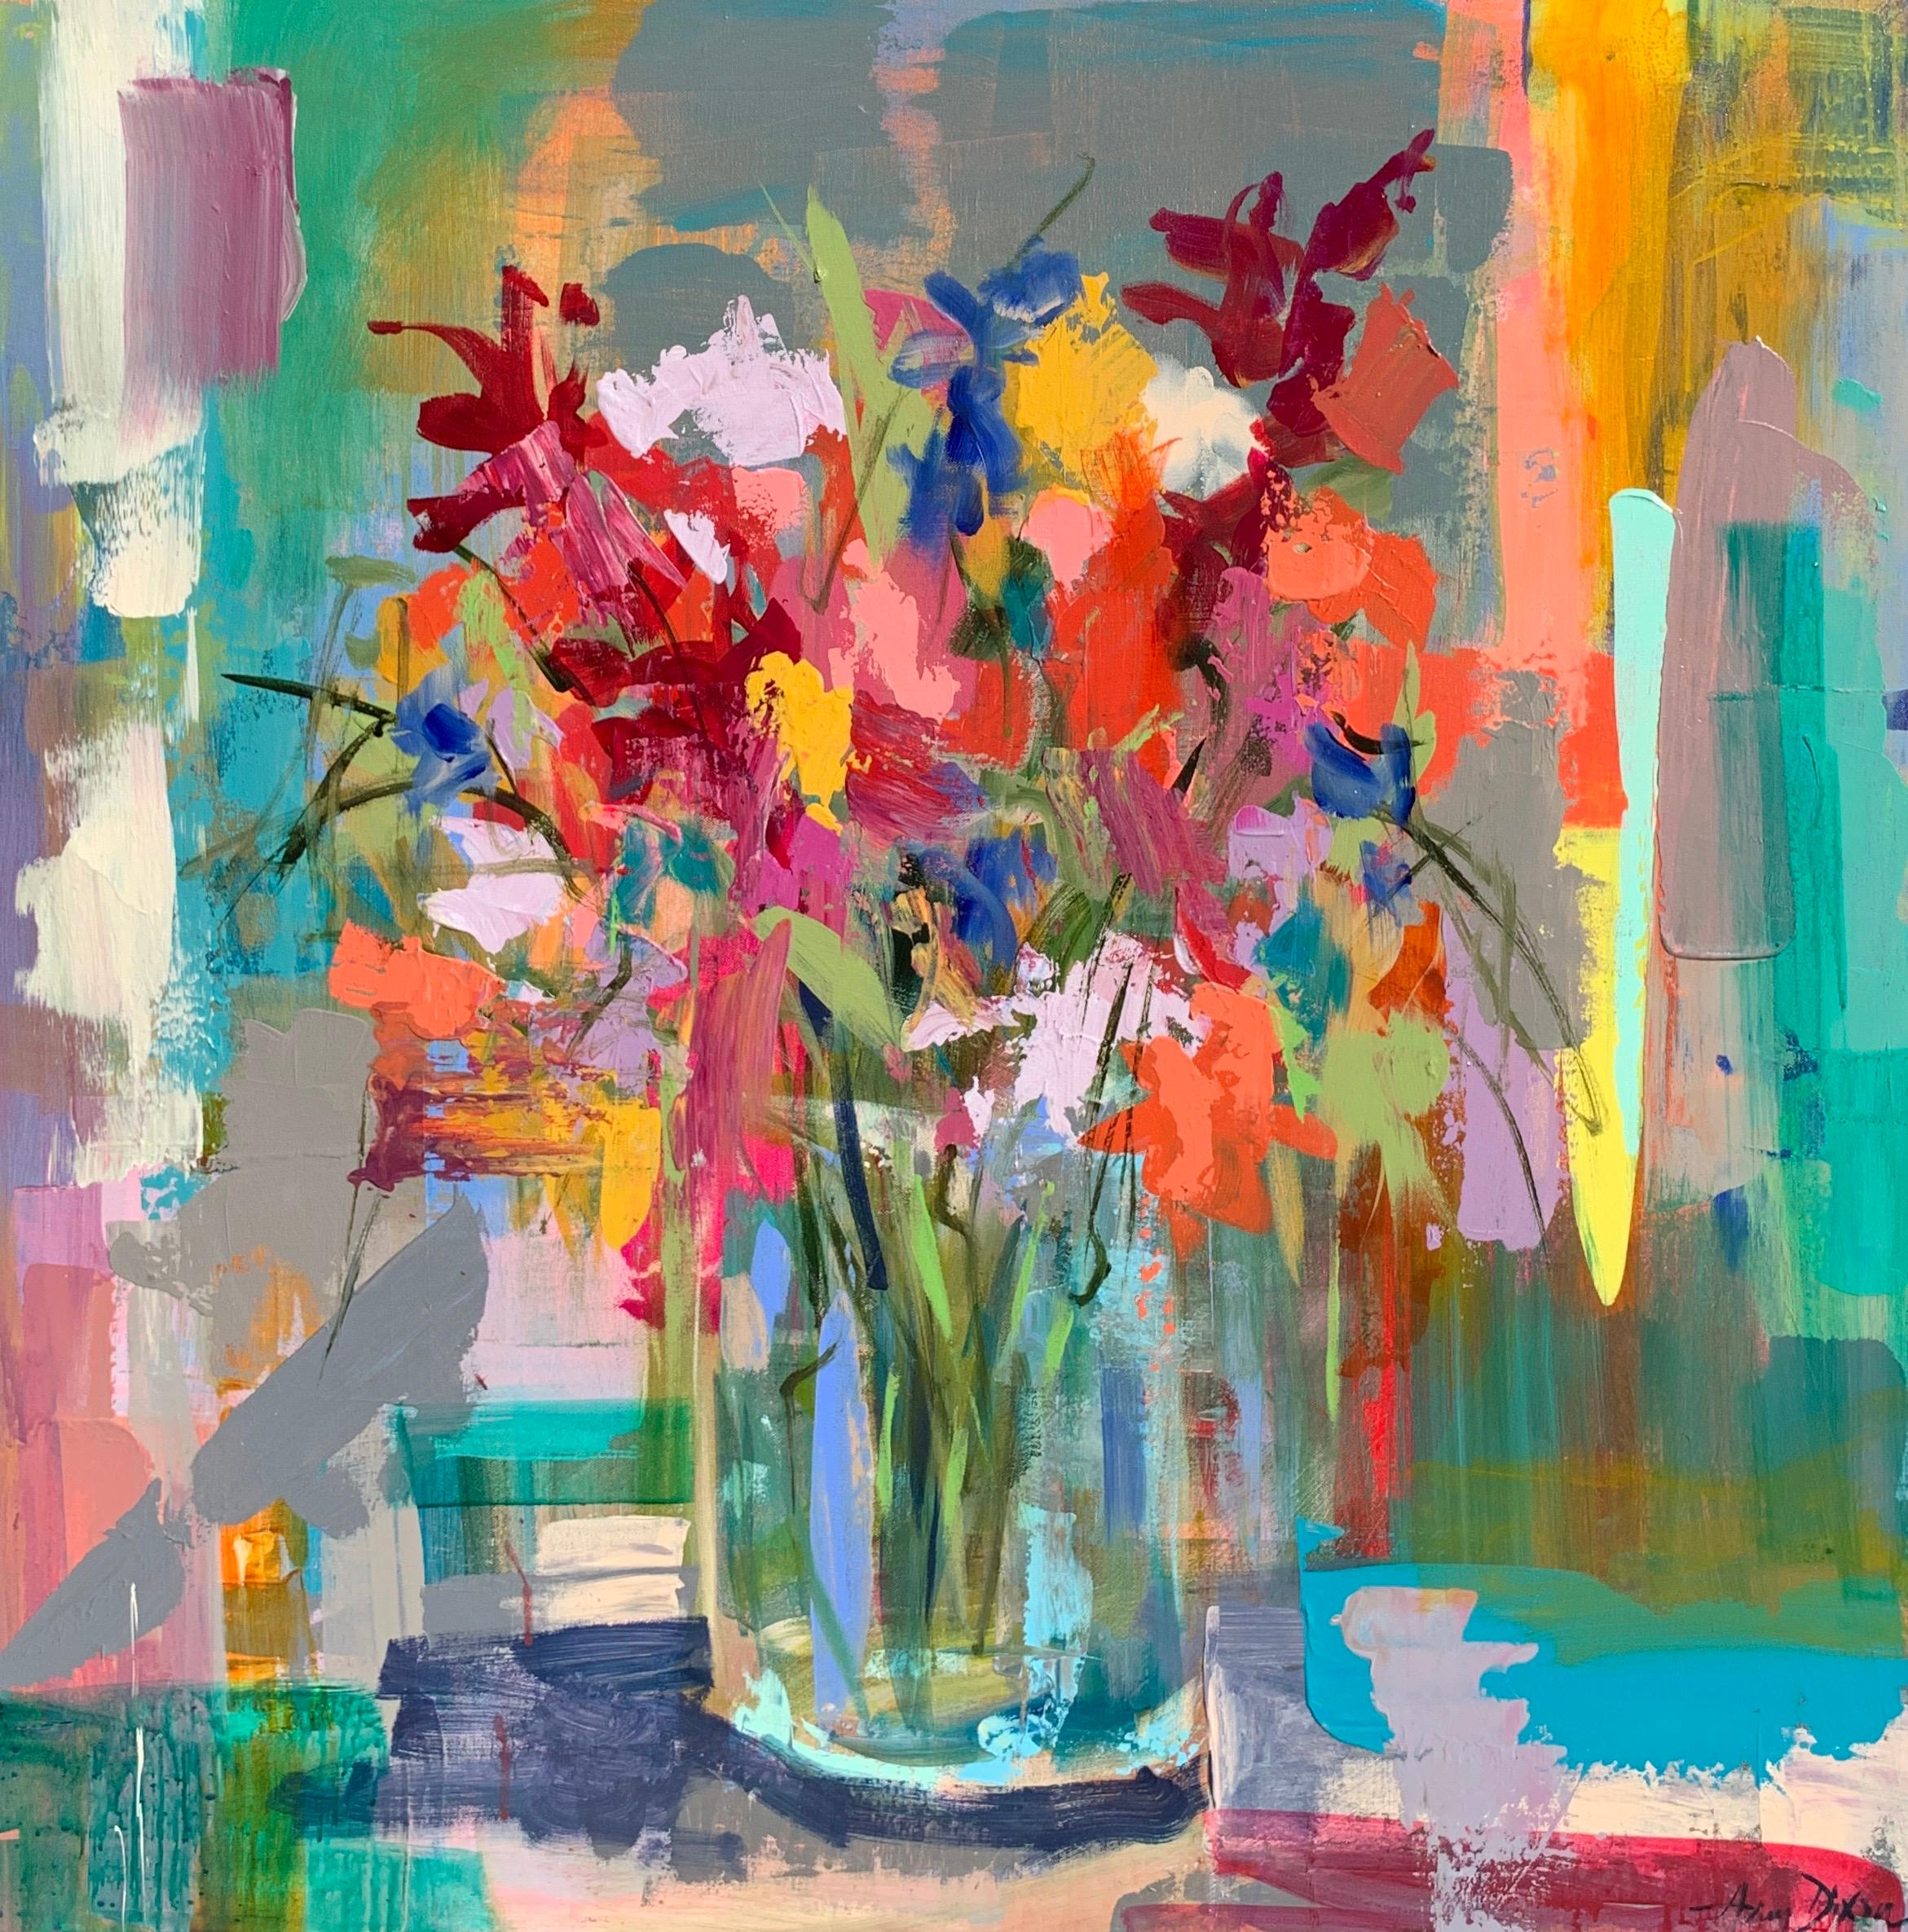 Suddenly Beautiful by Amy Dixon, Abstract Floral Acrylic on Canvas Painting